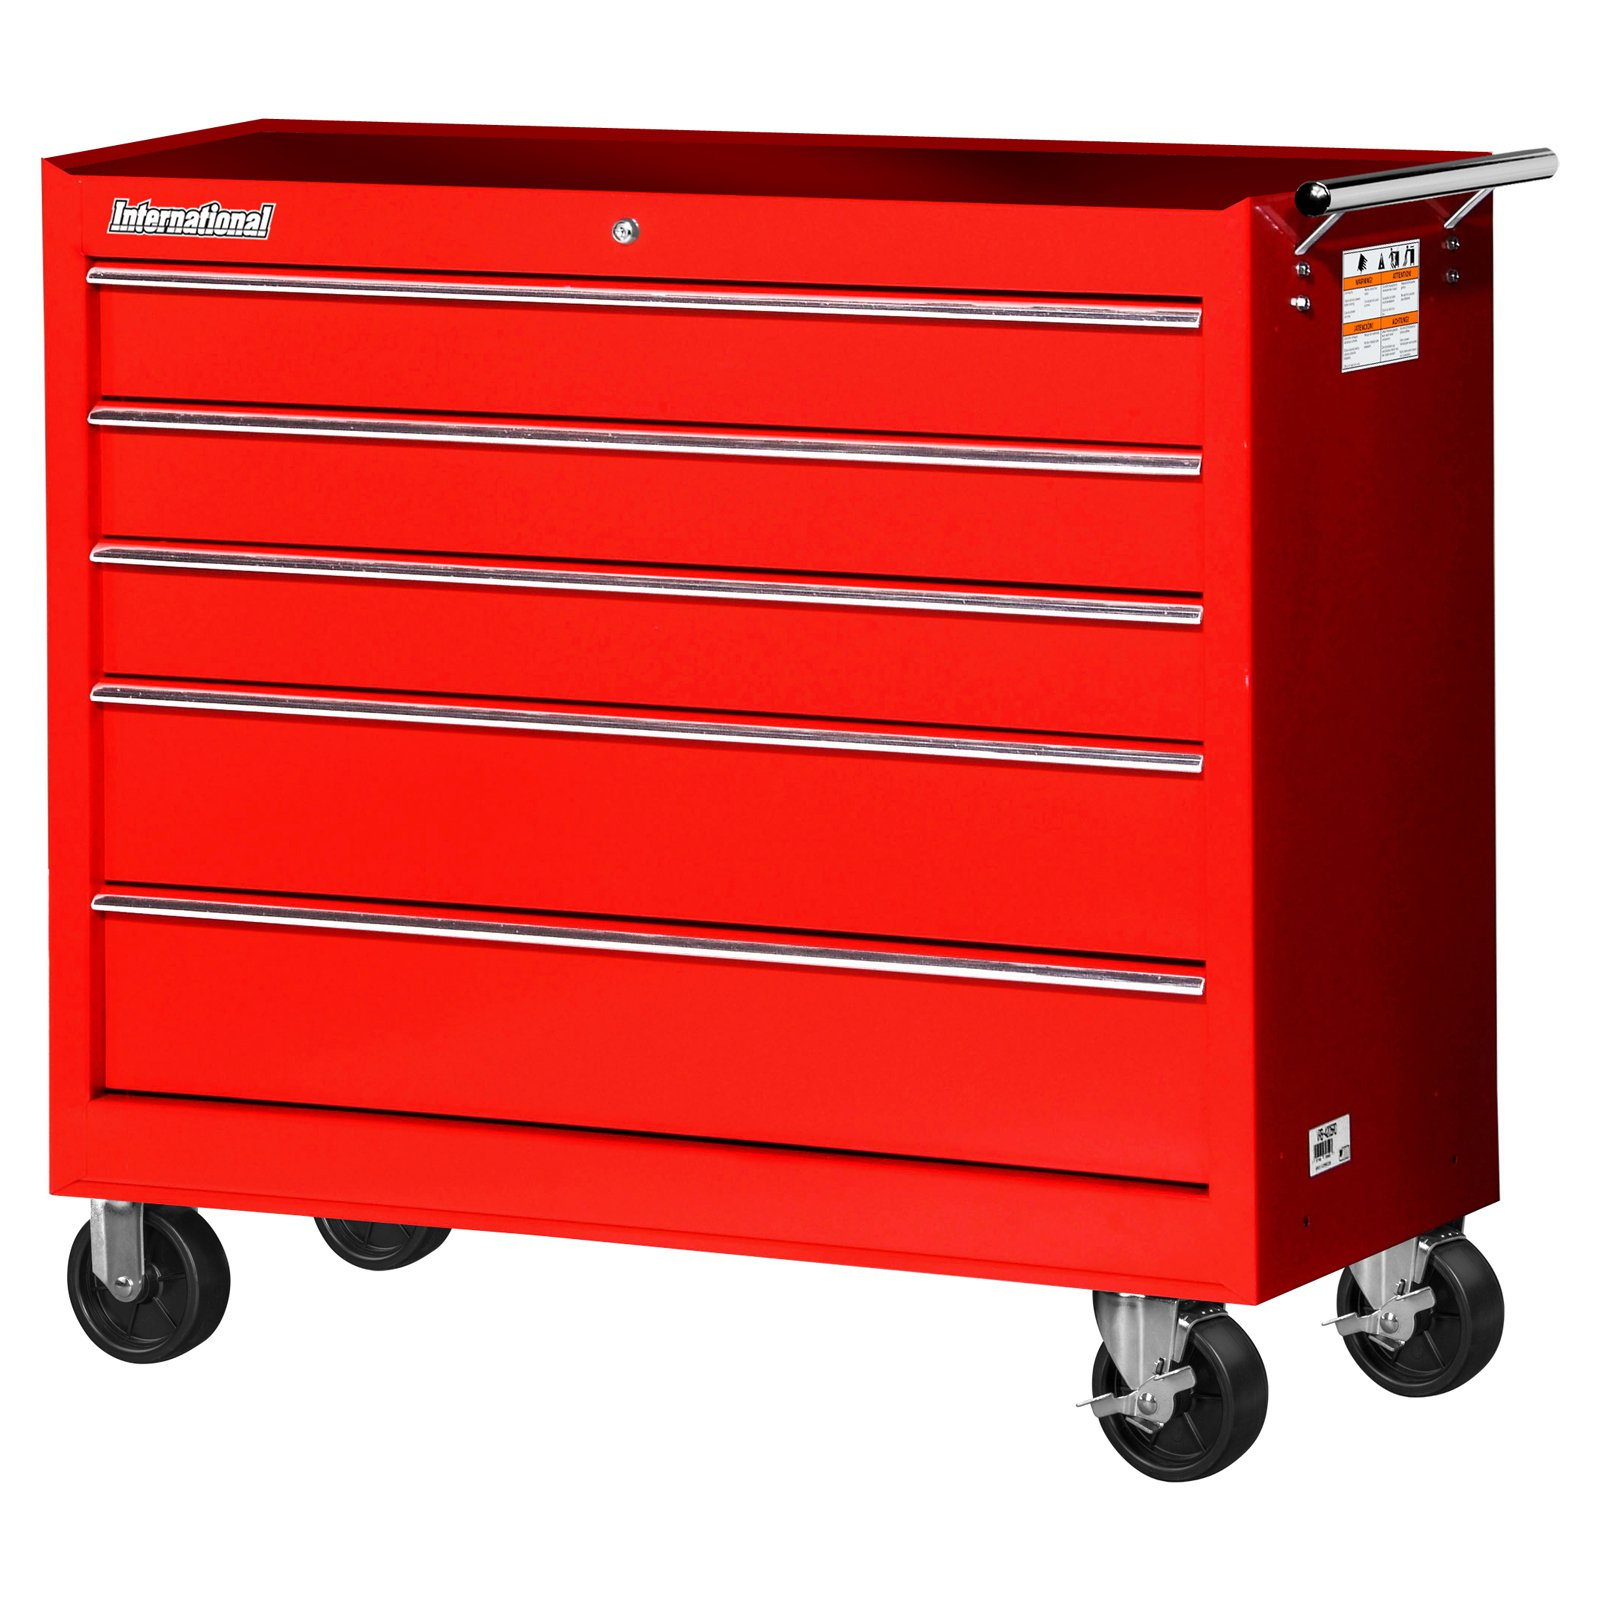 "International Workshop Series 42"" 5-Drawer Ball Bearing Slides Roller Cabinet, Red"